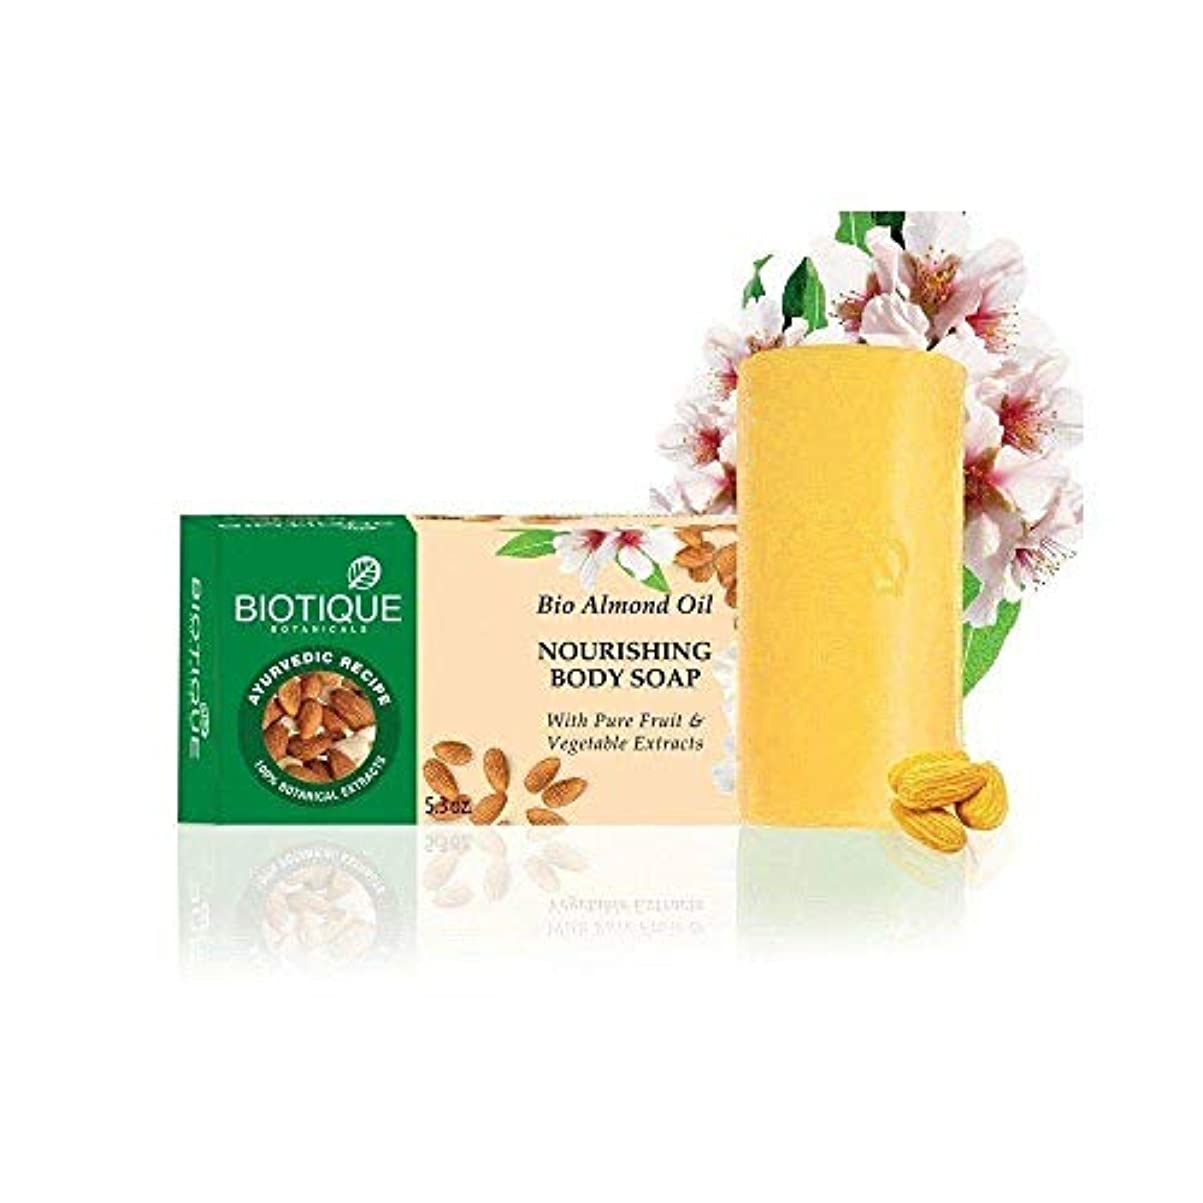 種をまくしがみつくガイドBiotique Bio Almond Oil Nourishing Body Soap - 150g (Pack of 2) wash Impurities Biotique Bio Almond Oilナリッシングボディソープ...